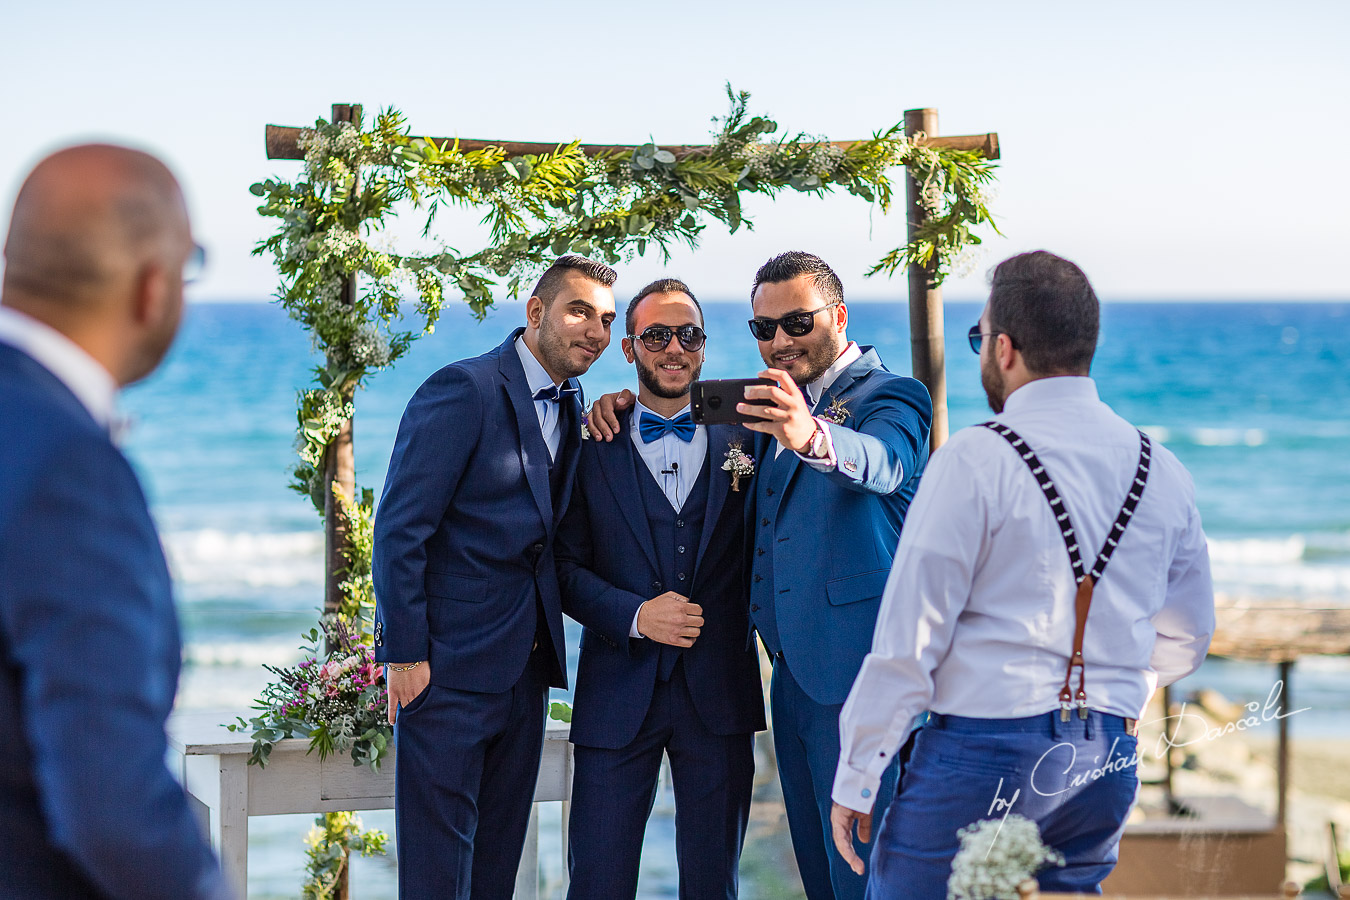 Groom and best men posing for selfies before the reception, as part of an Exclusive Wedding photography at Grand Resort Limassol, captured by Cyprus Wedding Photographer Cristian Dascalu.